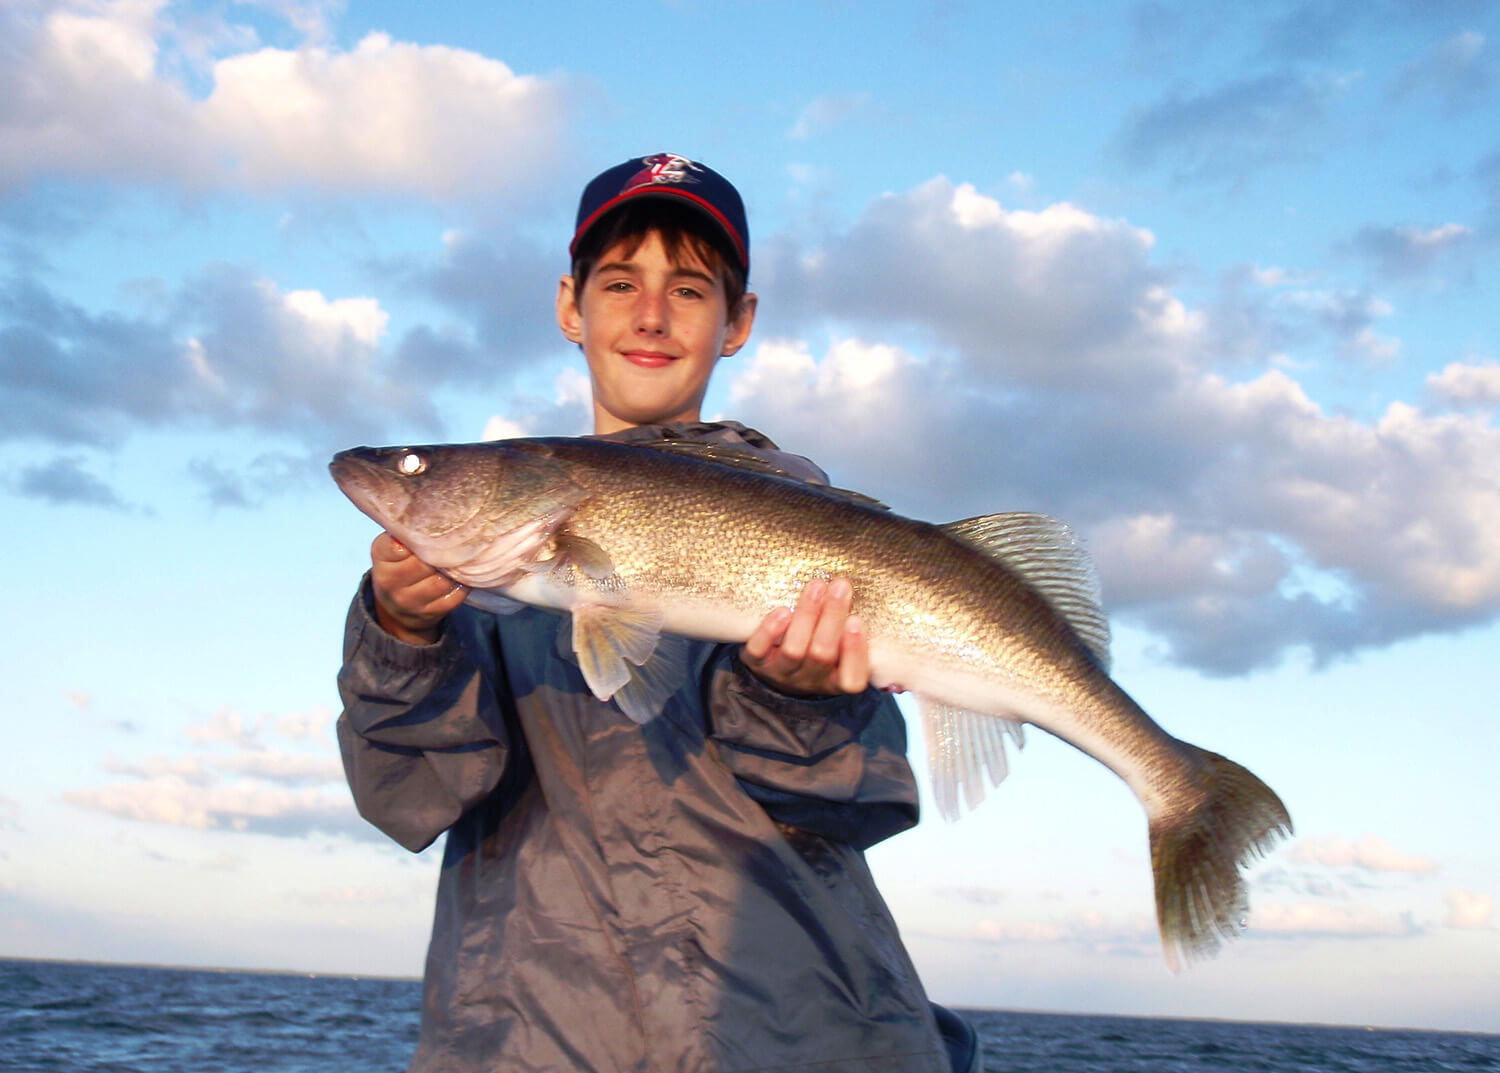 Mille lacs lake fishing report nitti 39 s hunters point resort for West point fishing report